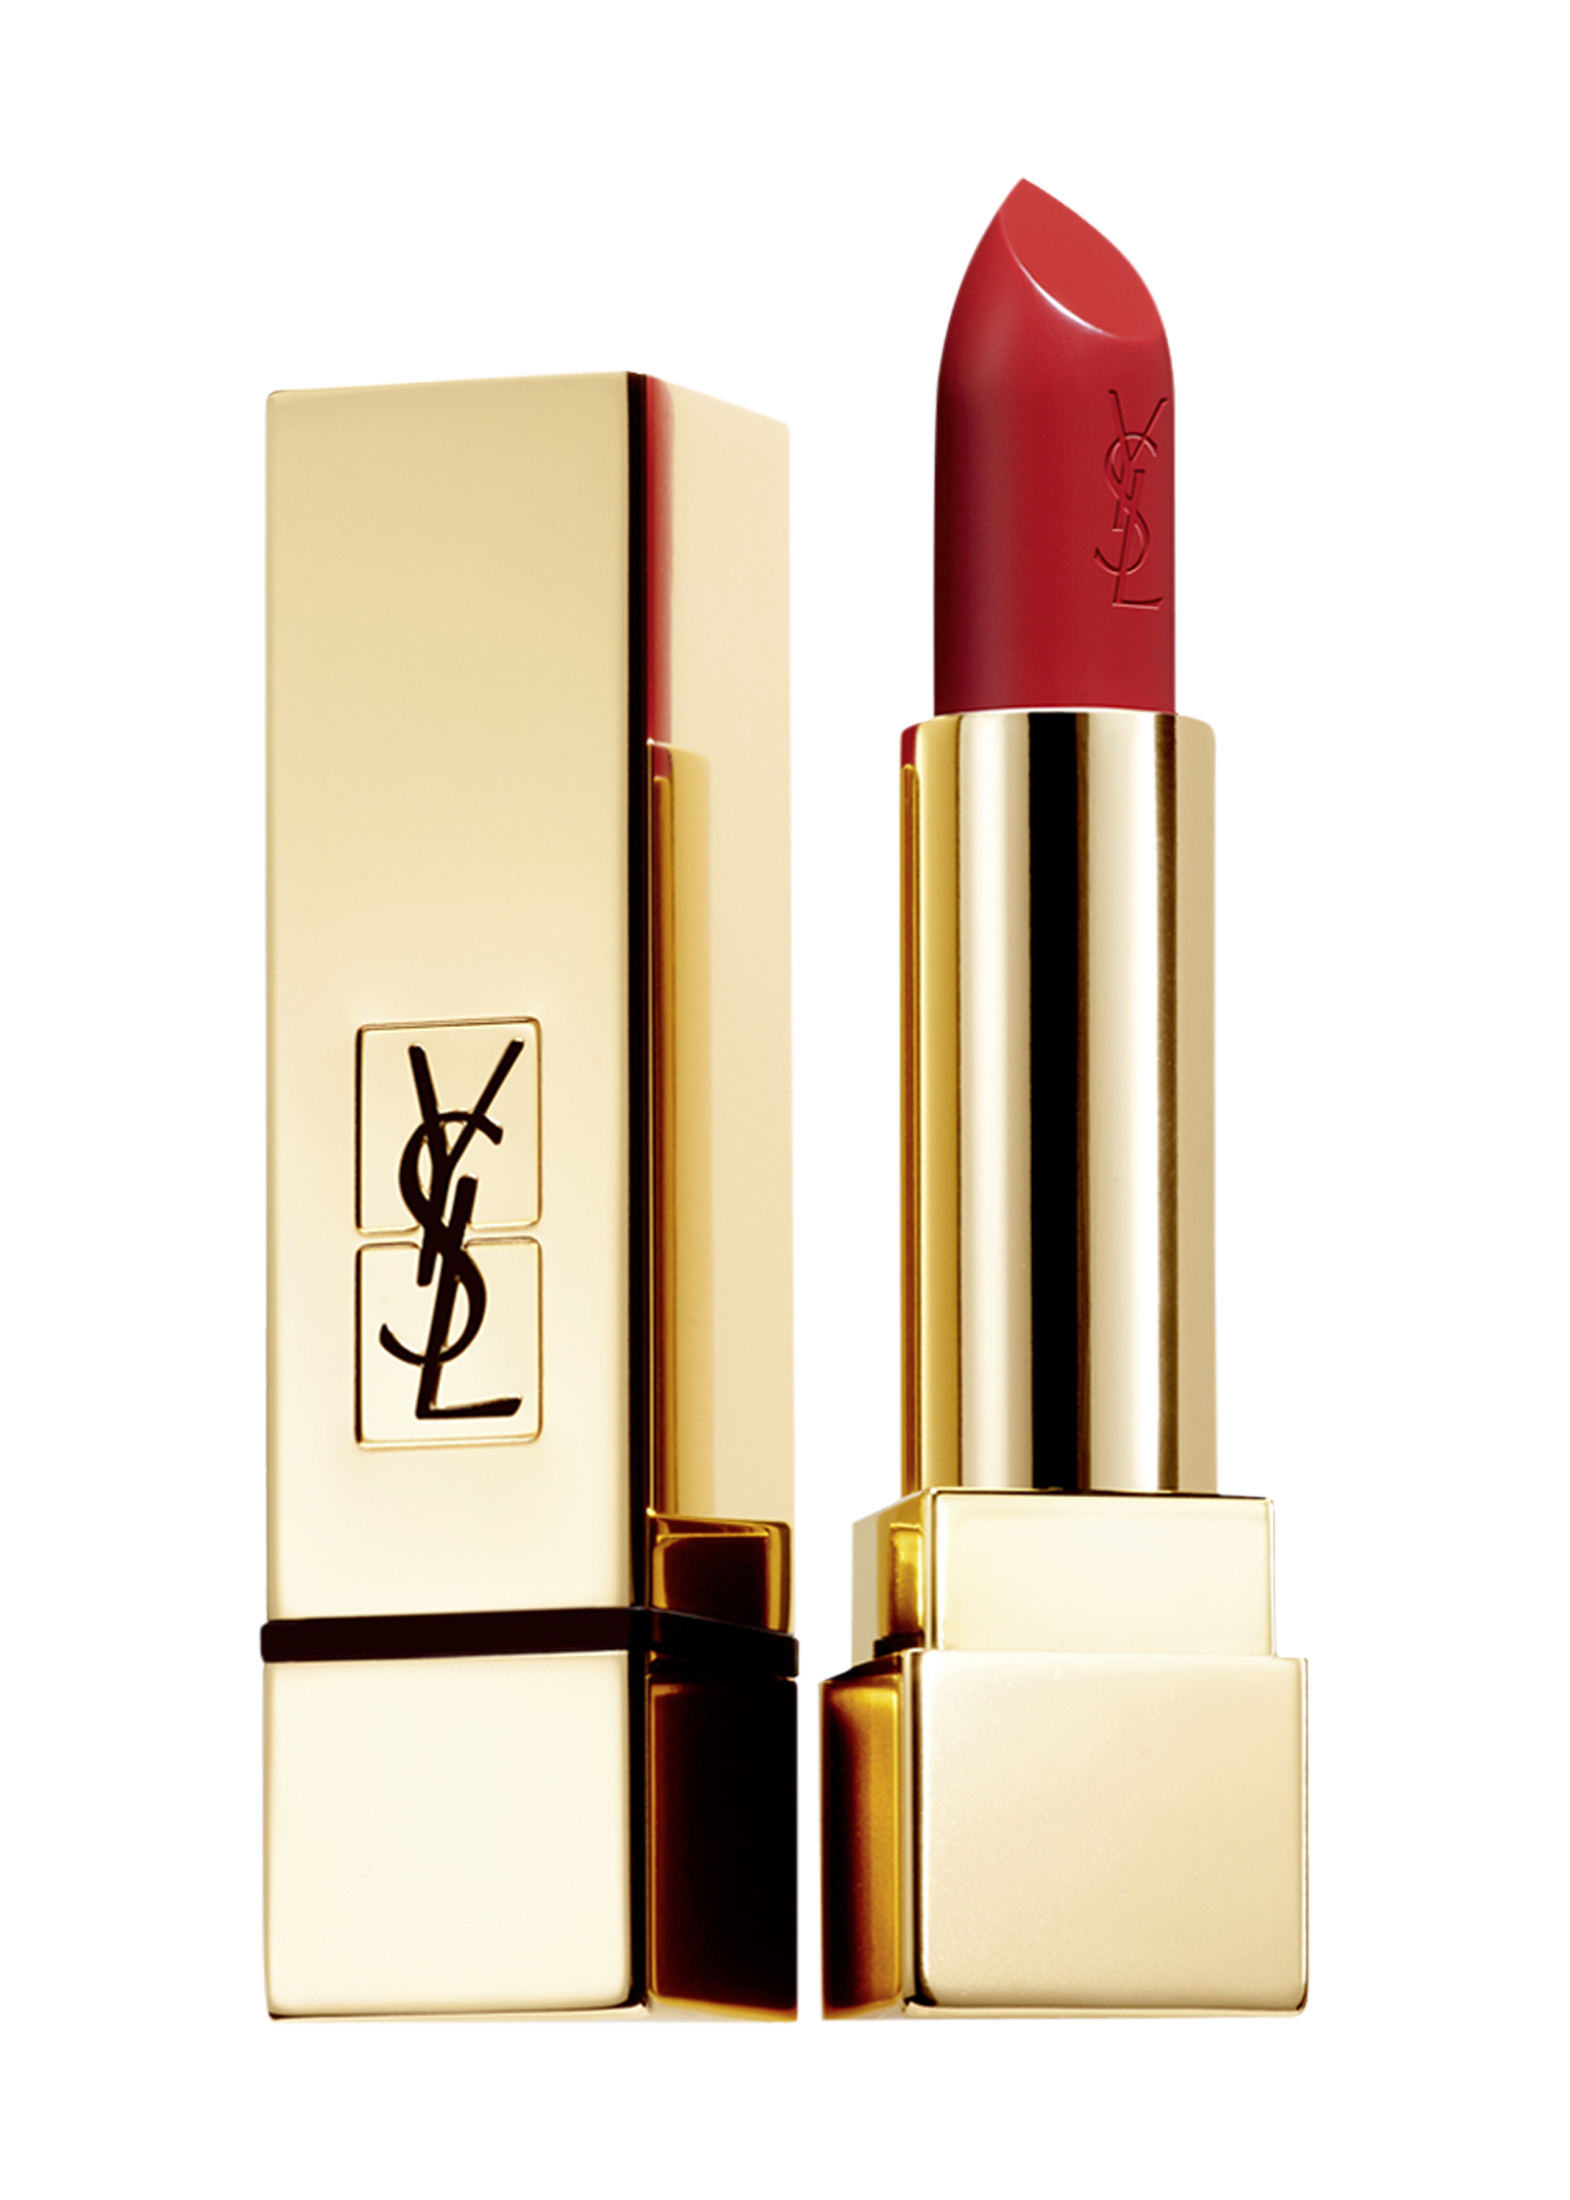 YSL, ROUGE PUR CO, 9 ROSE STILETTO, image number 0